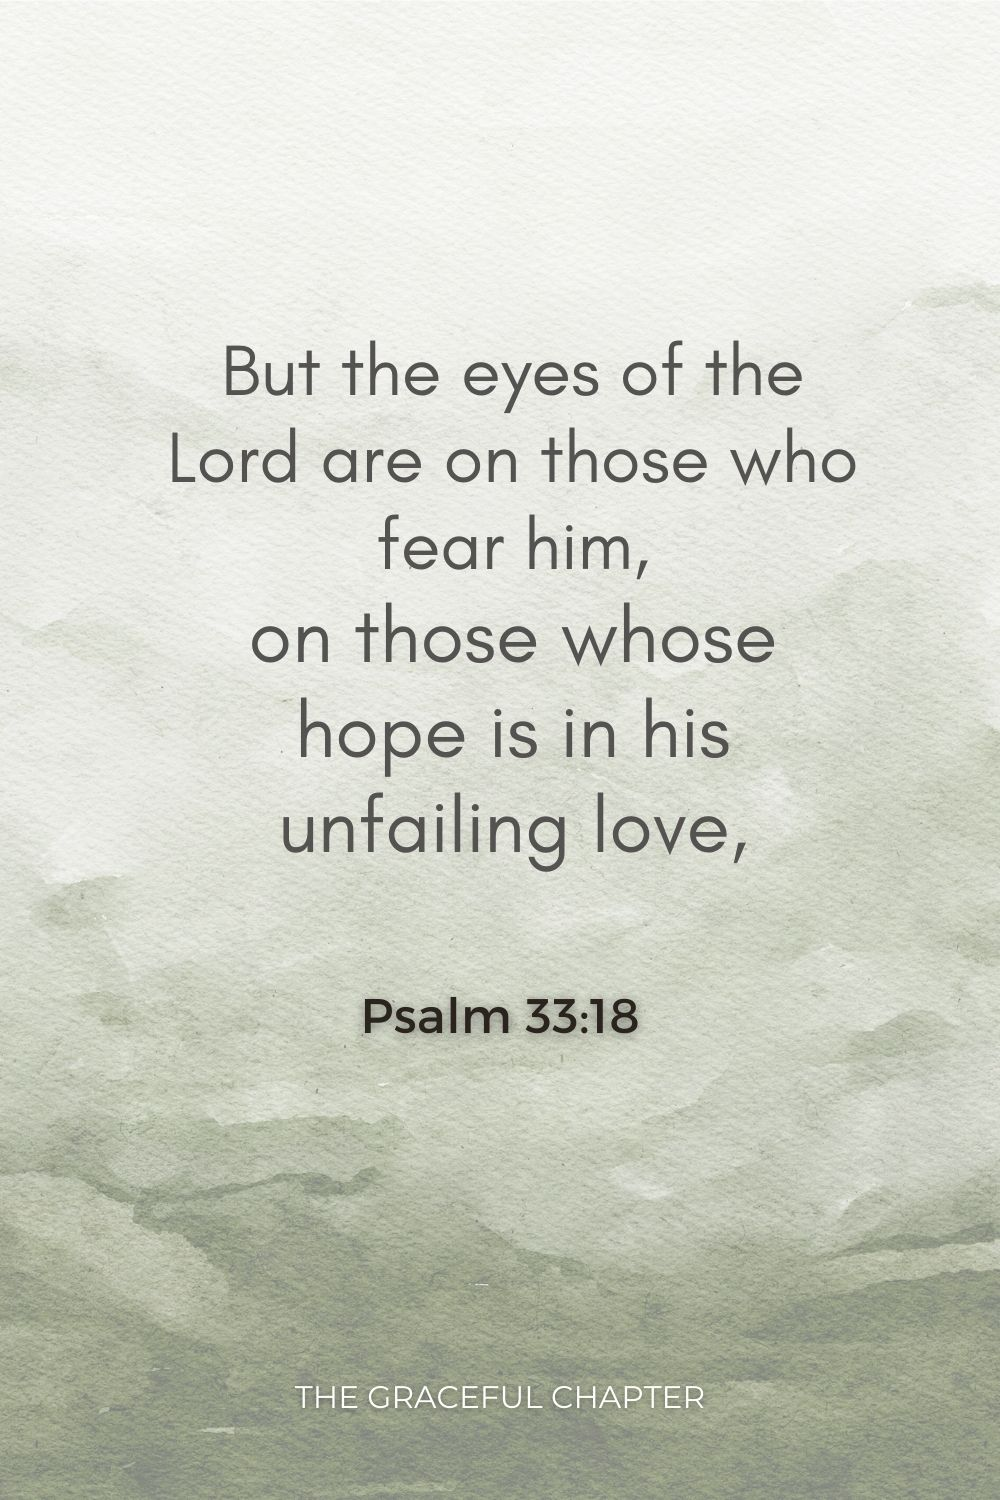 But the eyes of the Lord are on those who fear him, on those whose hope is in his unfailing love, Psalm 33:18